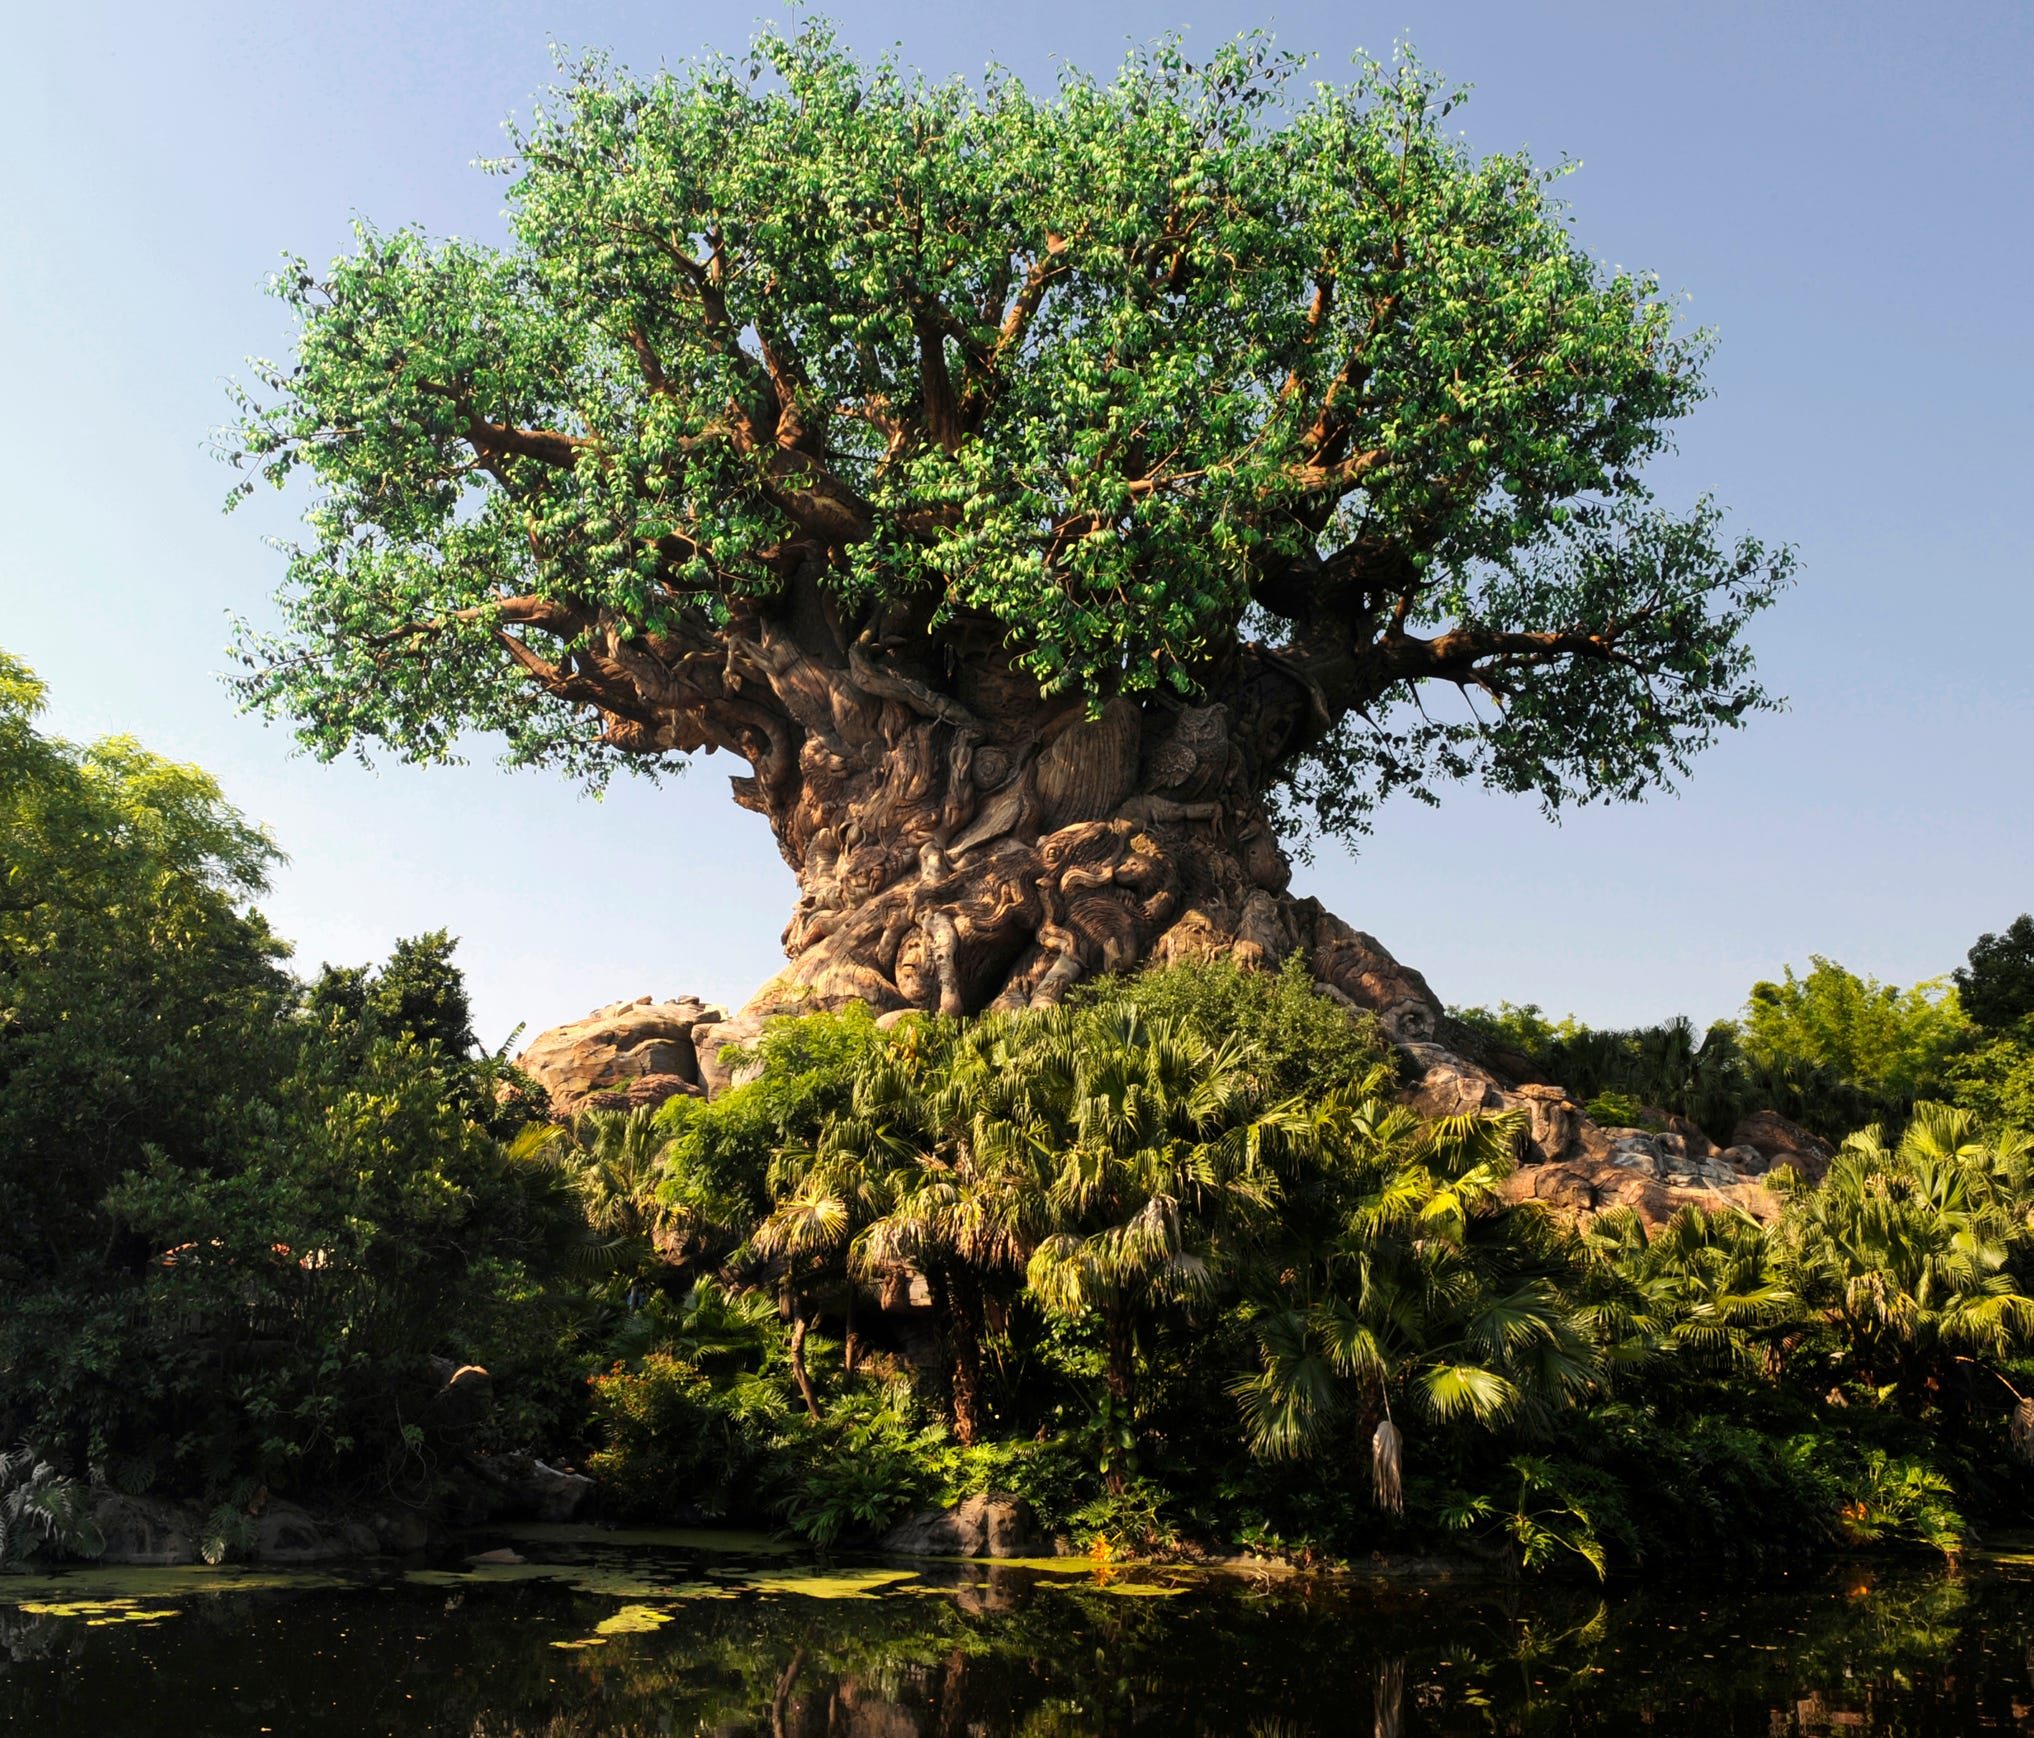 Disney's Animal Kingdom turns 20 years old on April 22, 2018. The park opened on Earth Day in 1998.